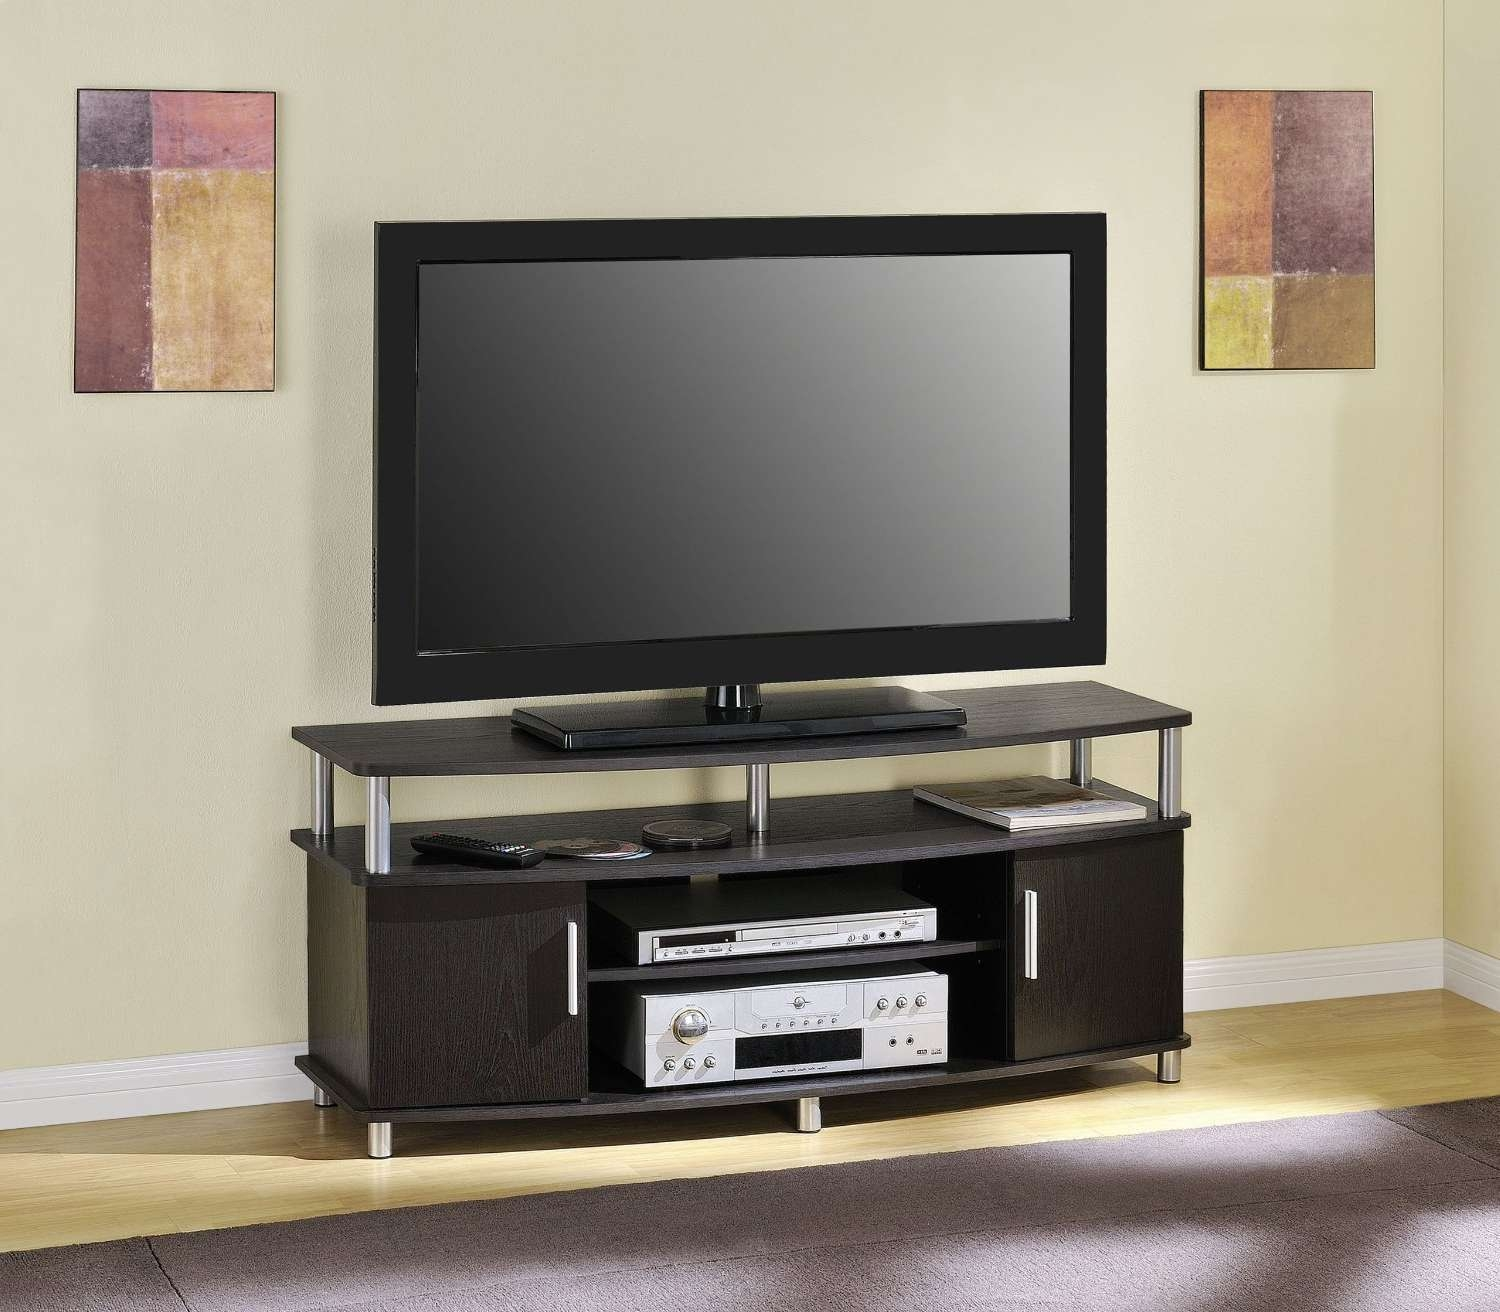 Small Black Oak Wood Tv Stand With Countertop And Cabinet Storage Intended For Contemporary Tv Stands For Flat Screens (View 6 of 15)